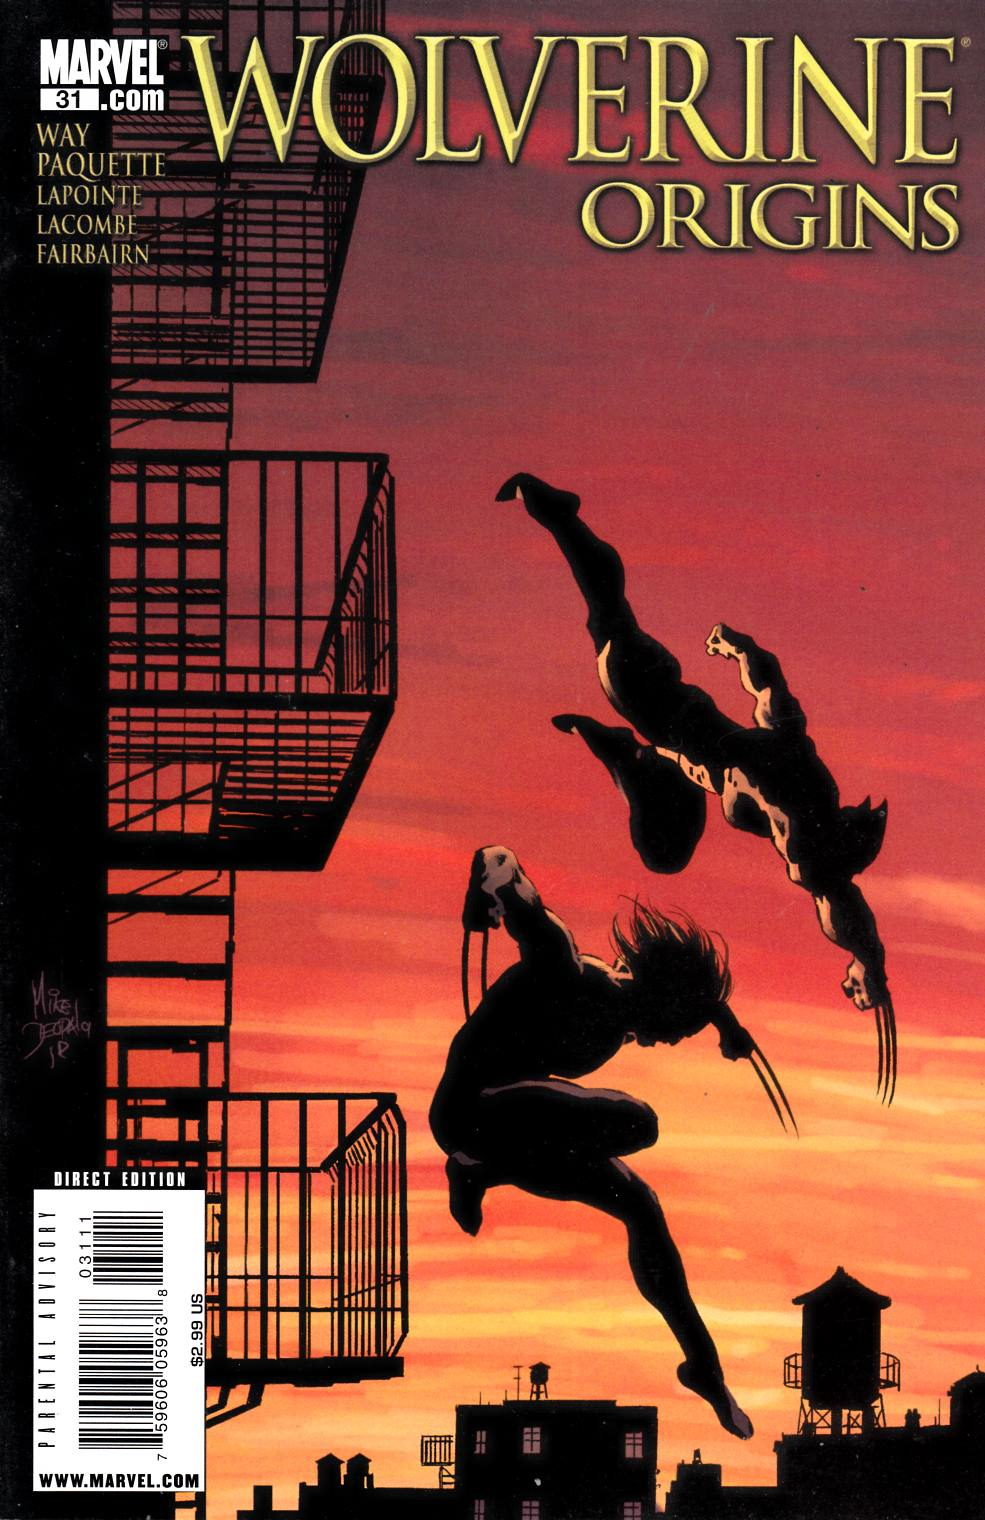 Wolverine Origins #31 Very Fine (8.0) [Marvel Comic] LARGE